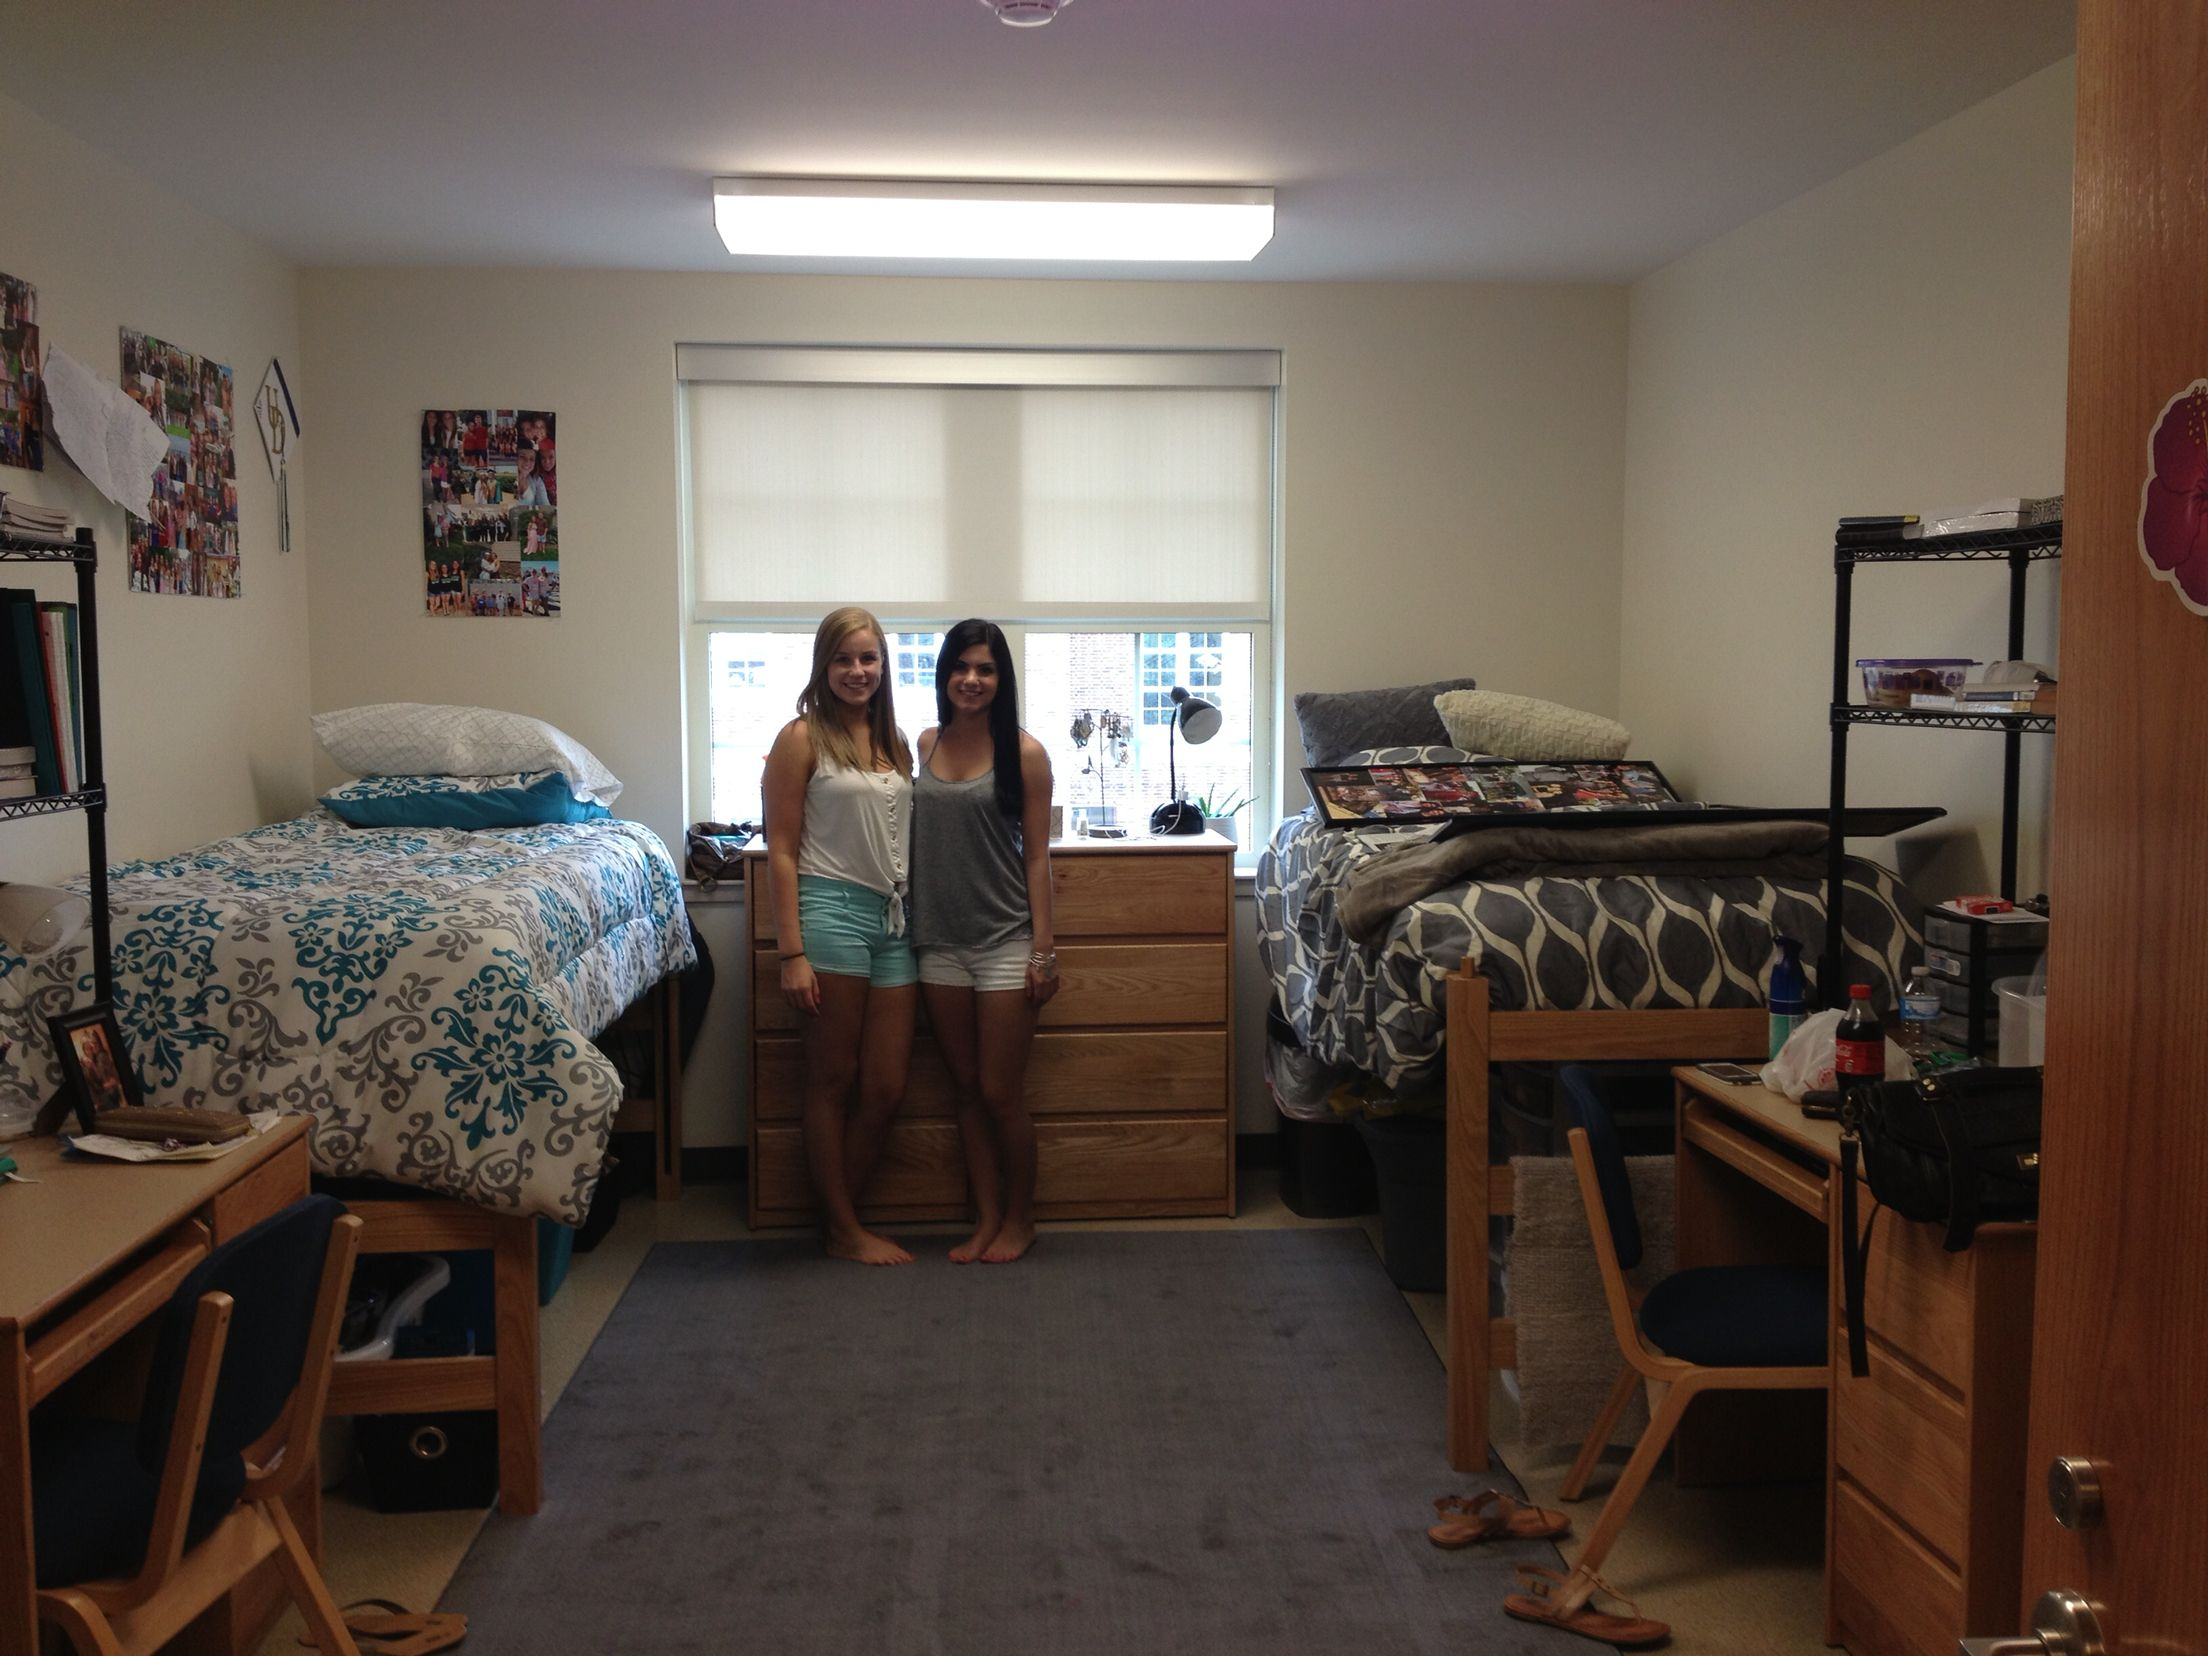 University Of Delaware Freshman Dorm College Visit Pics Pinterest Dorm College And Dorm Room